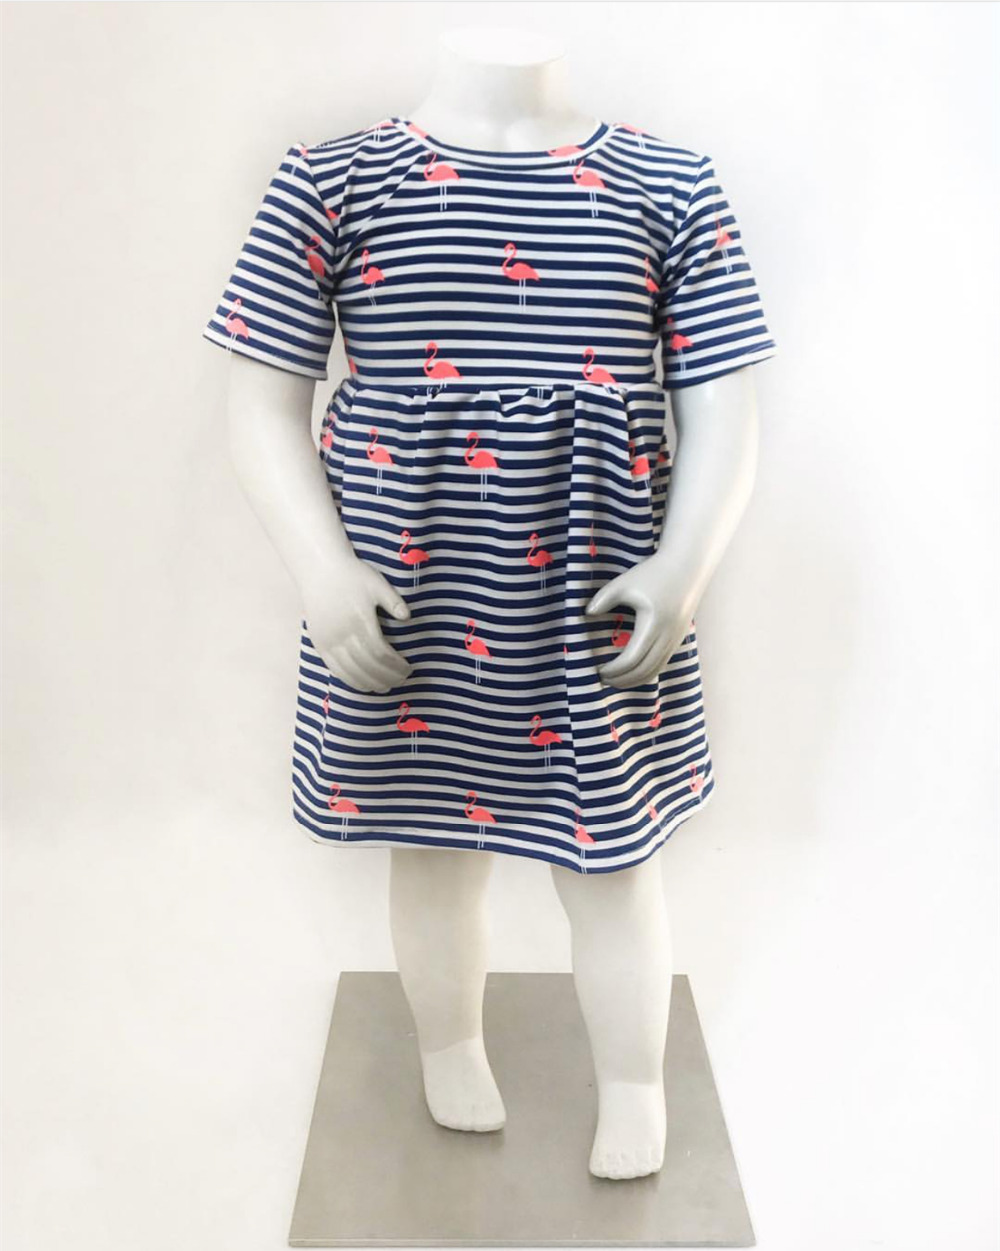 a99b088eaf82 Detail Feedback Questions about Summer Casual Style Baby Girls Toddler Kids  Baby Girls Flamingo Print Striped Princess Dress Sundress Outfits Clothes  on ...